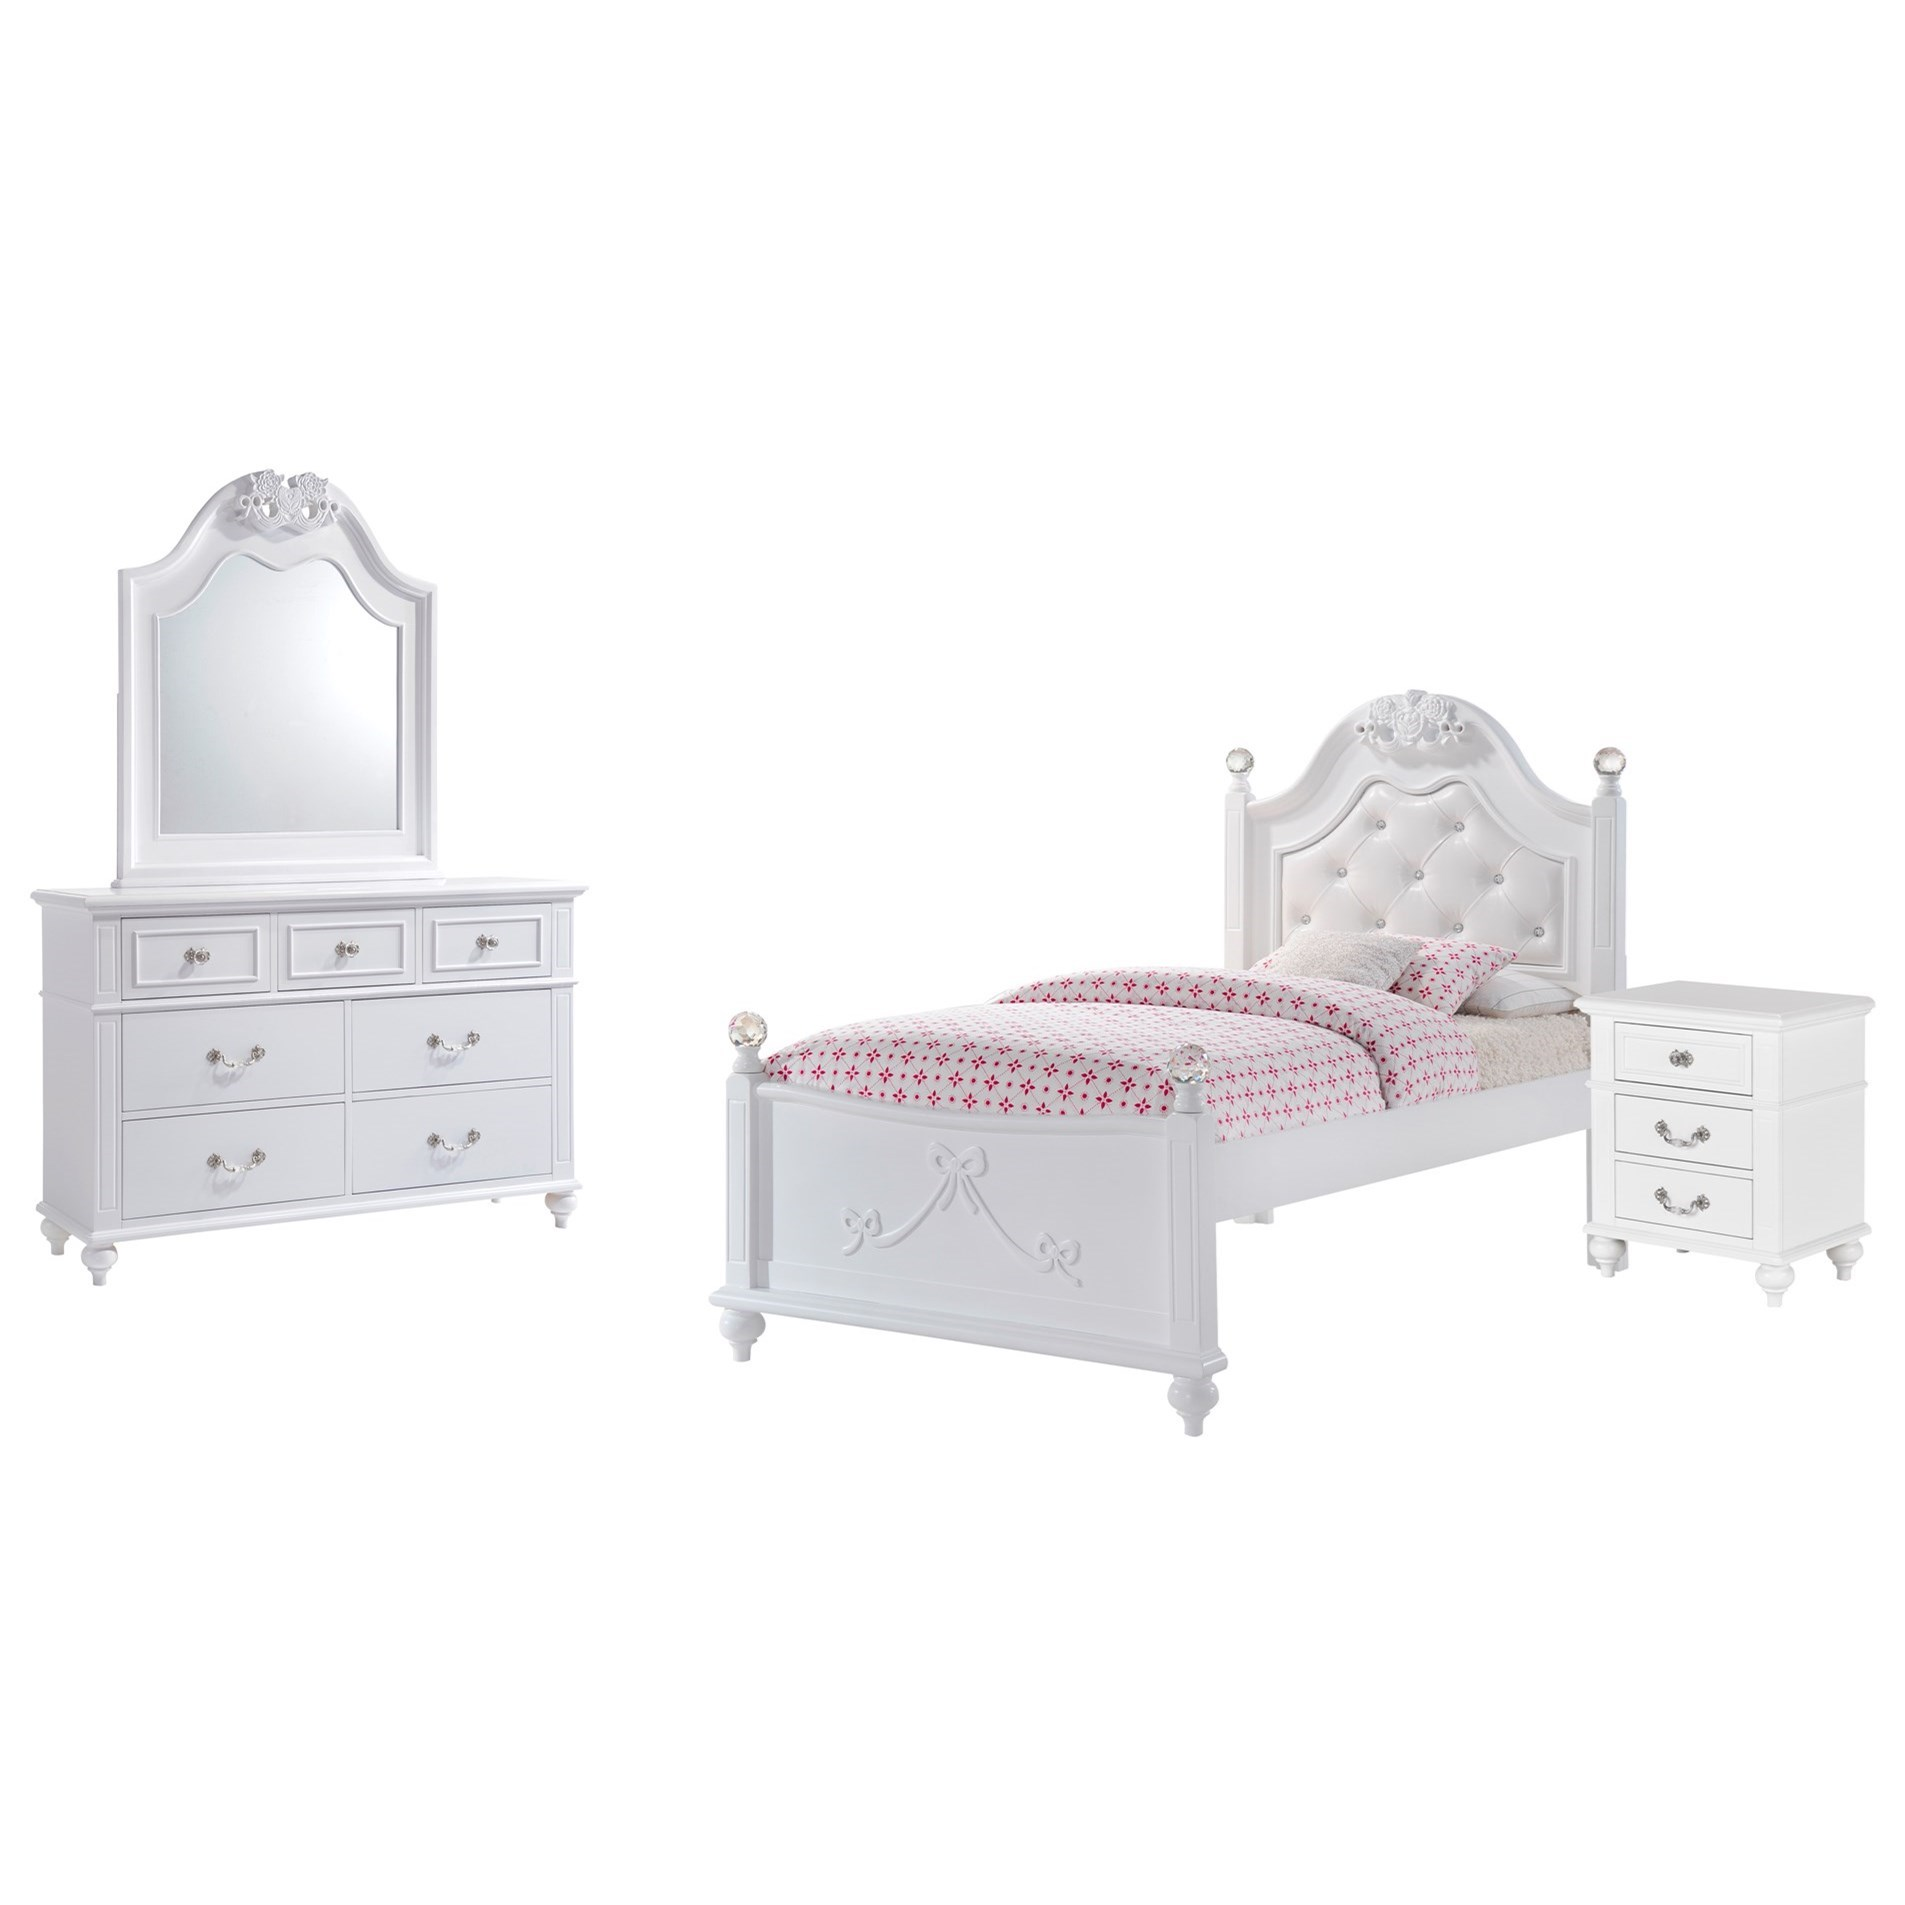 Alana Twin 4-Piece Bedroom Set by Elements International at Beck's Furniture